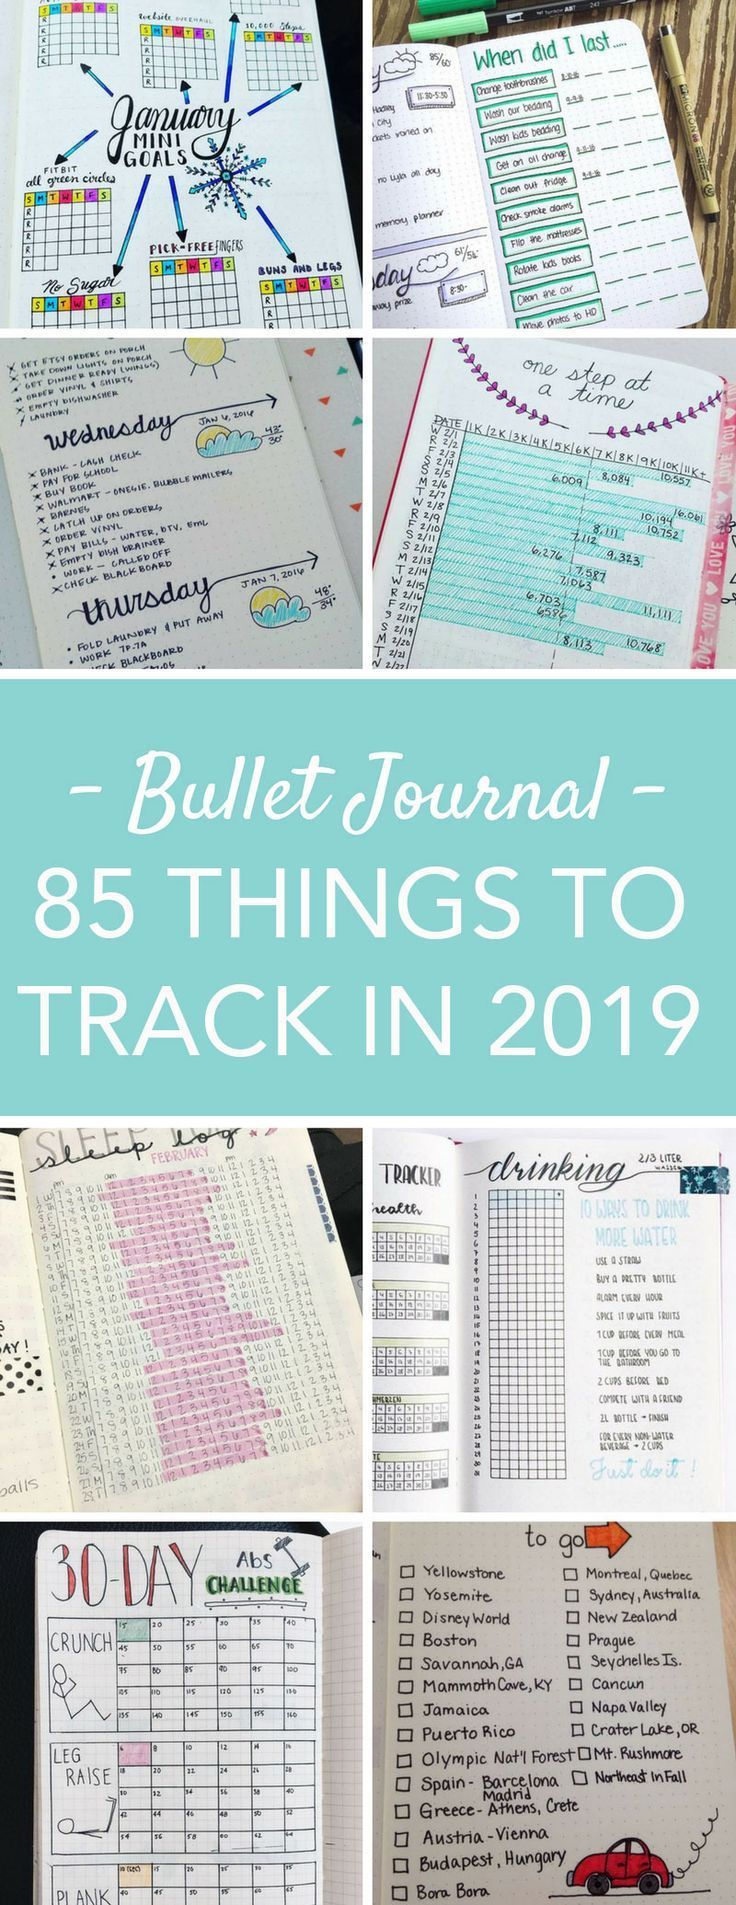 Die ULTIMATE-Liste der Bullet Journal-Sendungen un…